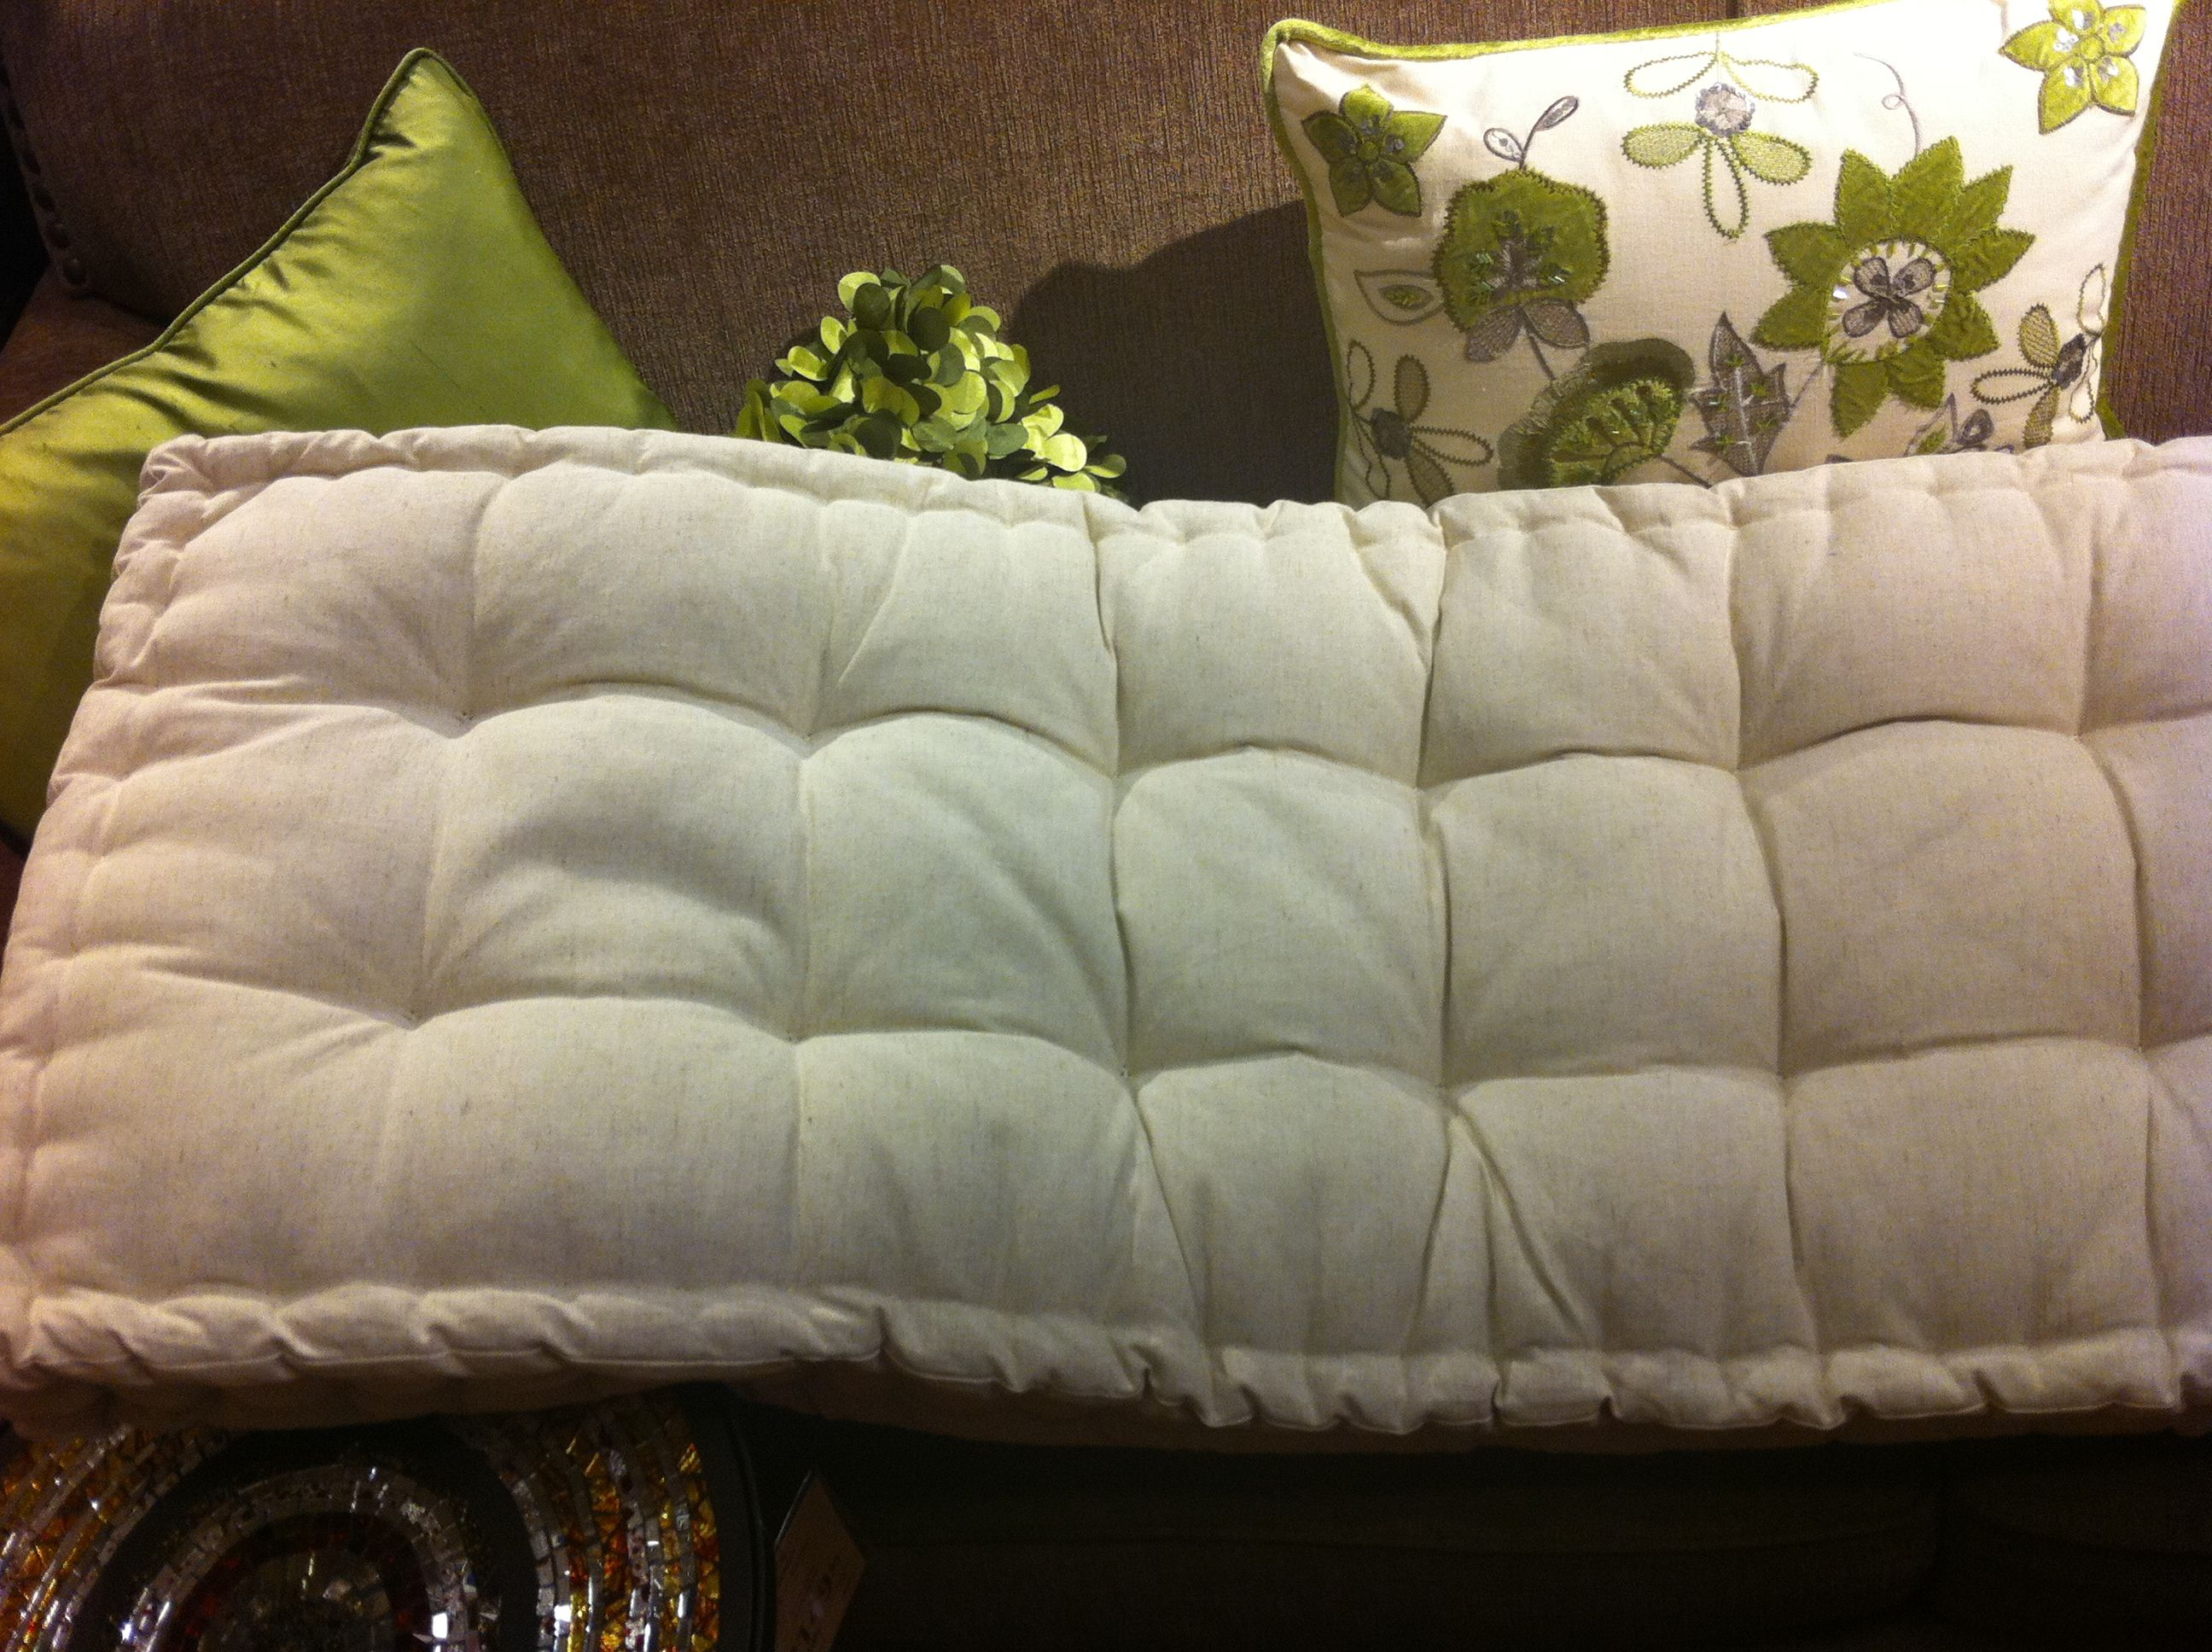 tufted bench cushion - Pier 1 For the Home Pinterest Tufted bench, Bench cushions and ...